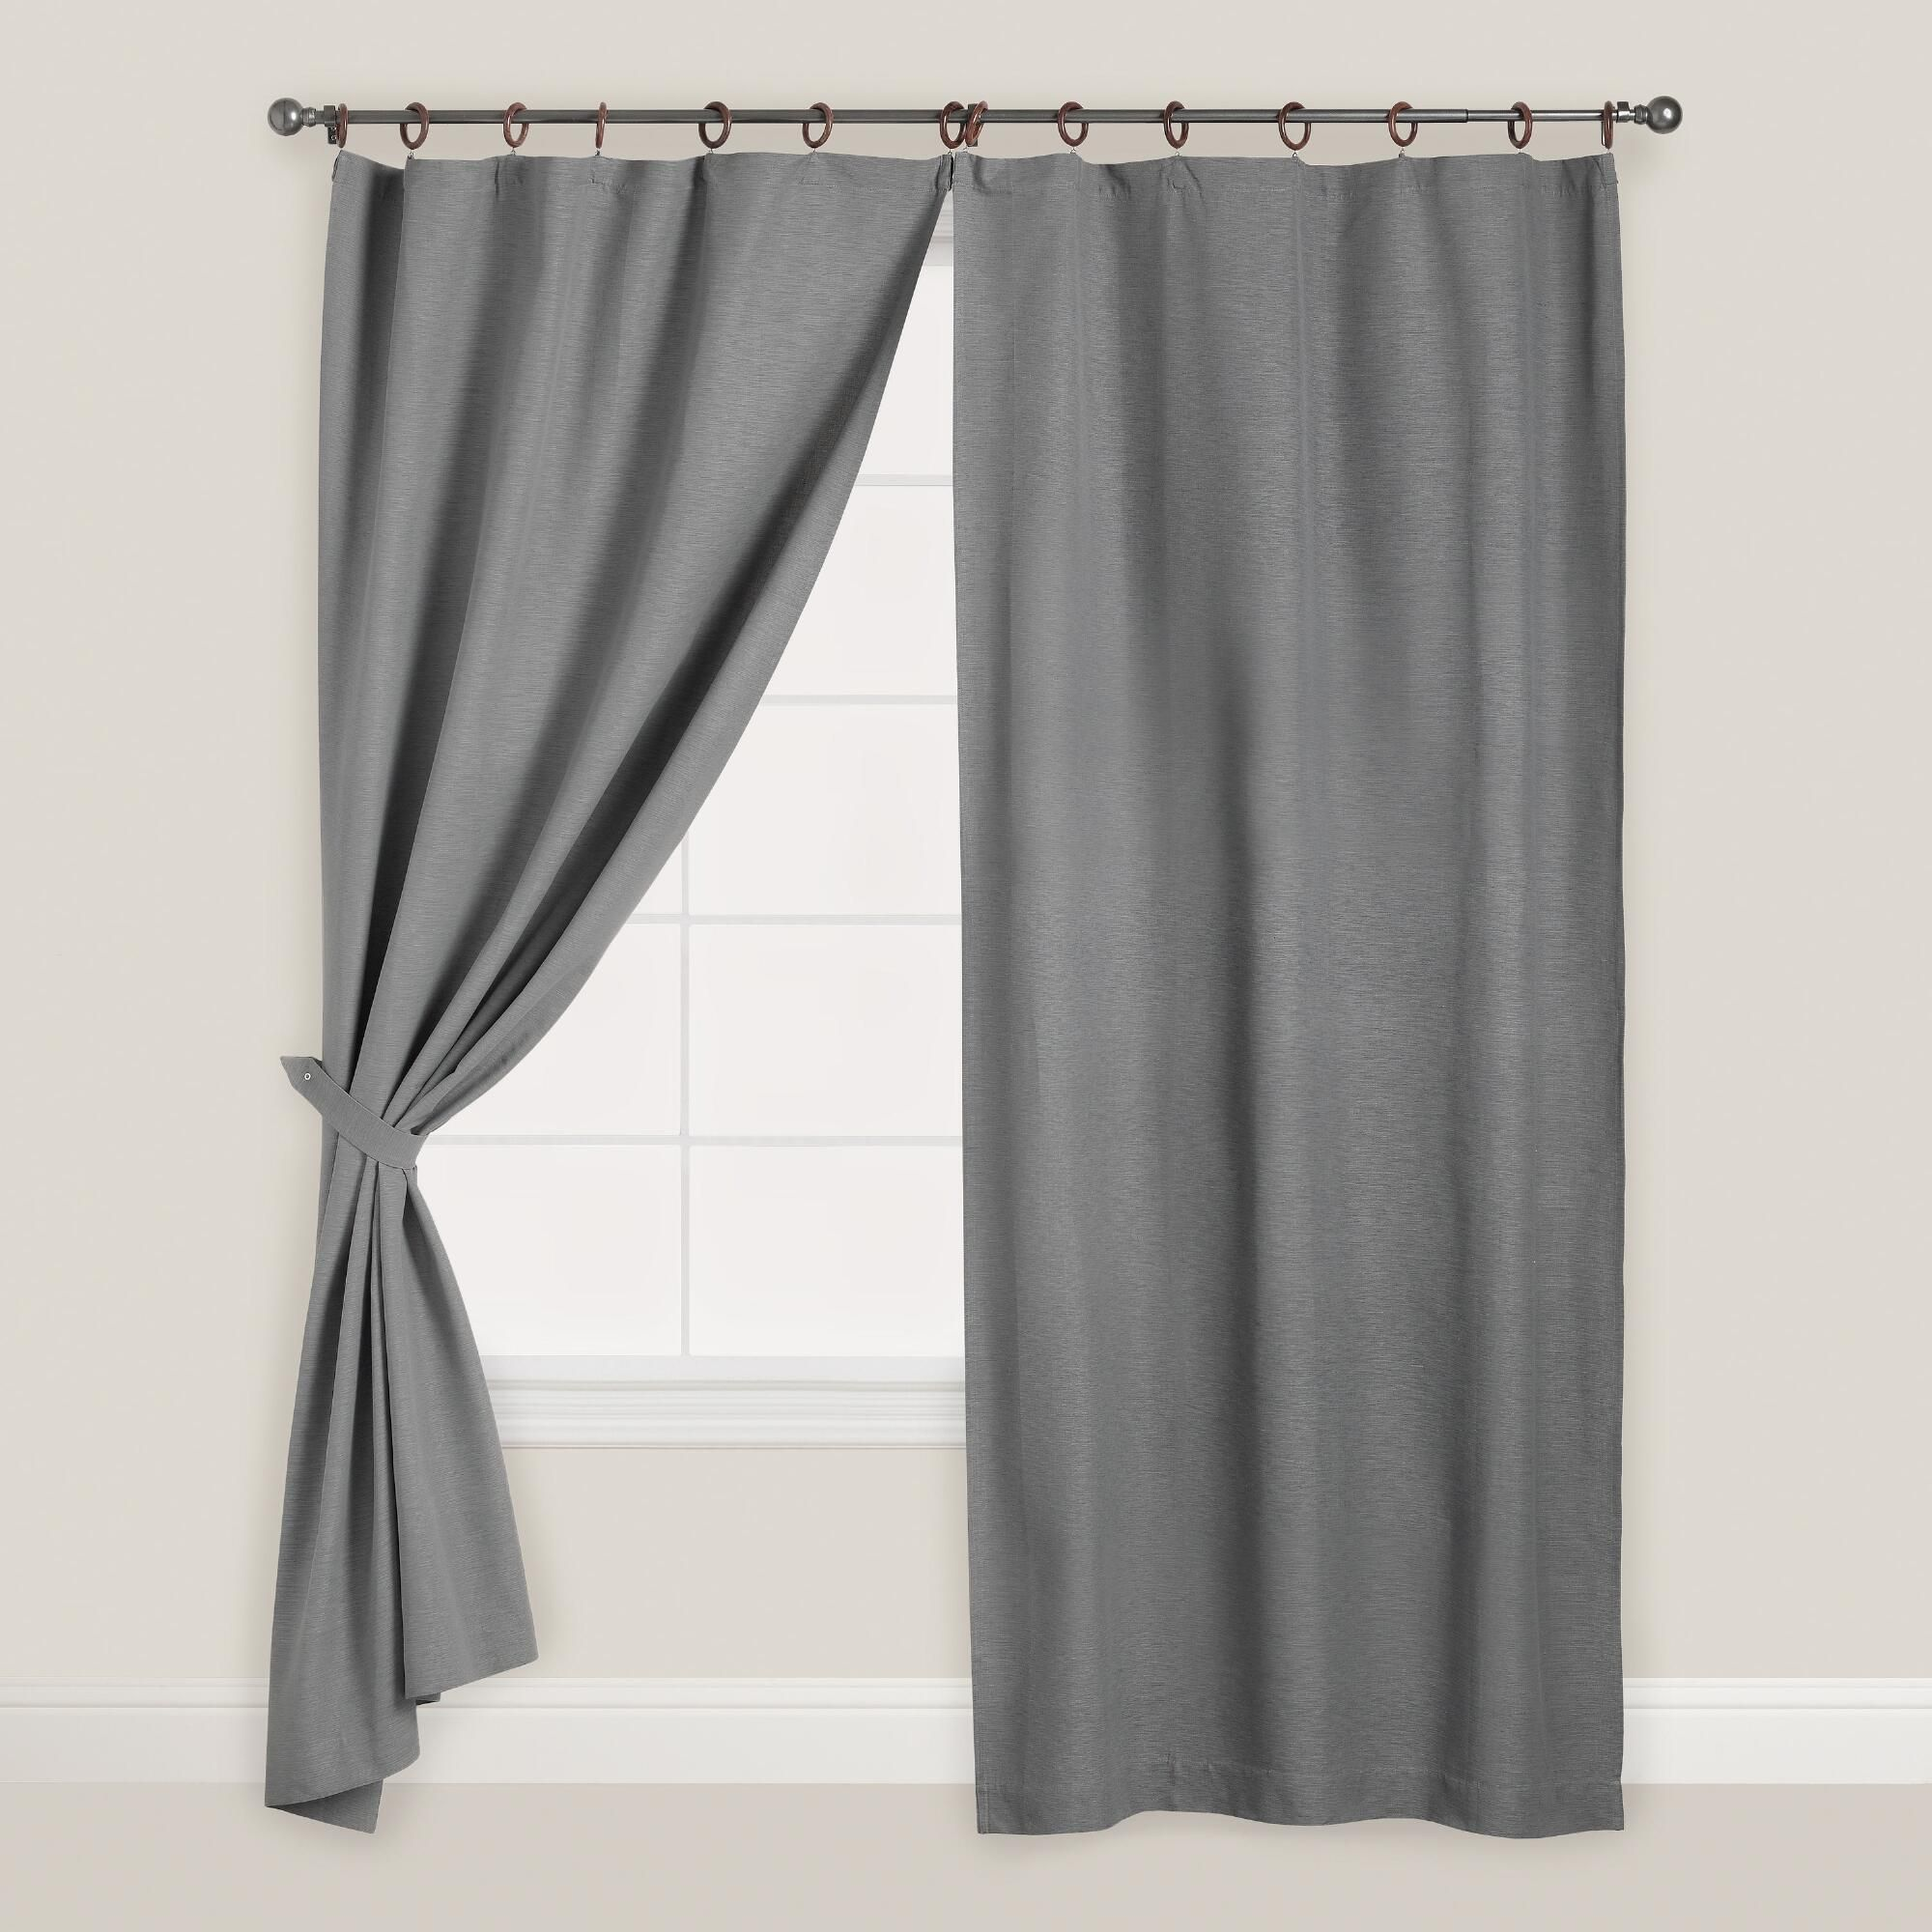 lettres antan parement coton brod curtains curtain voilage gris chambray pin illets